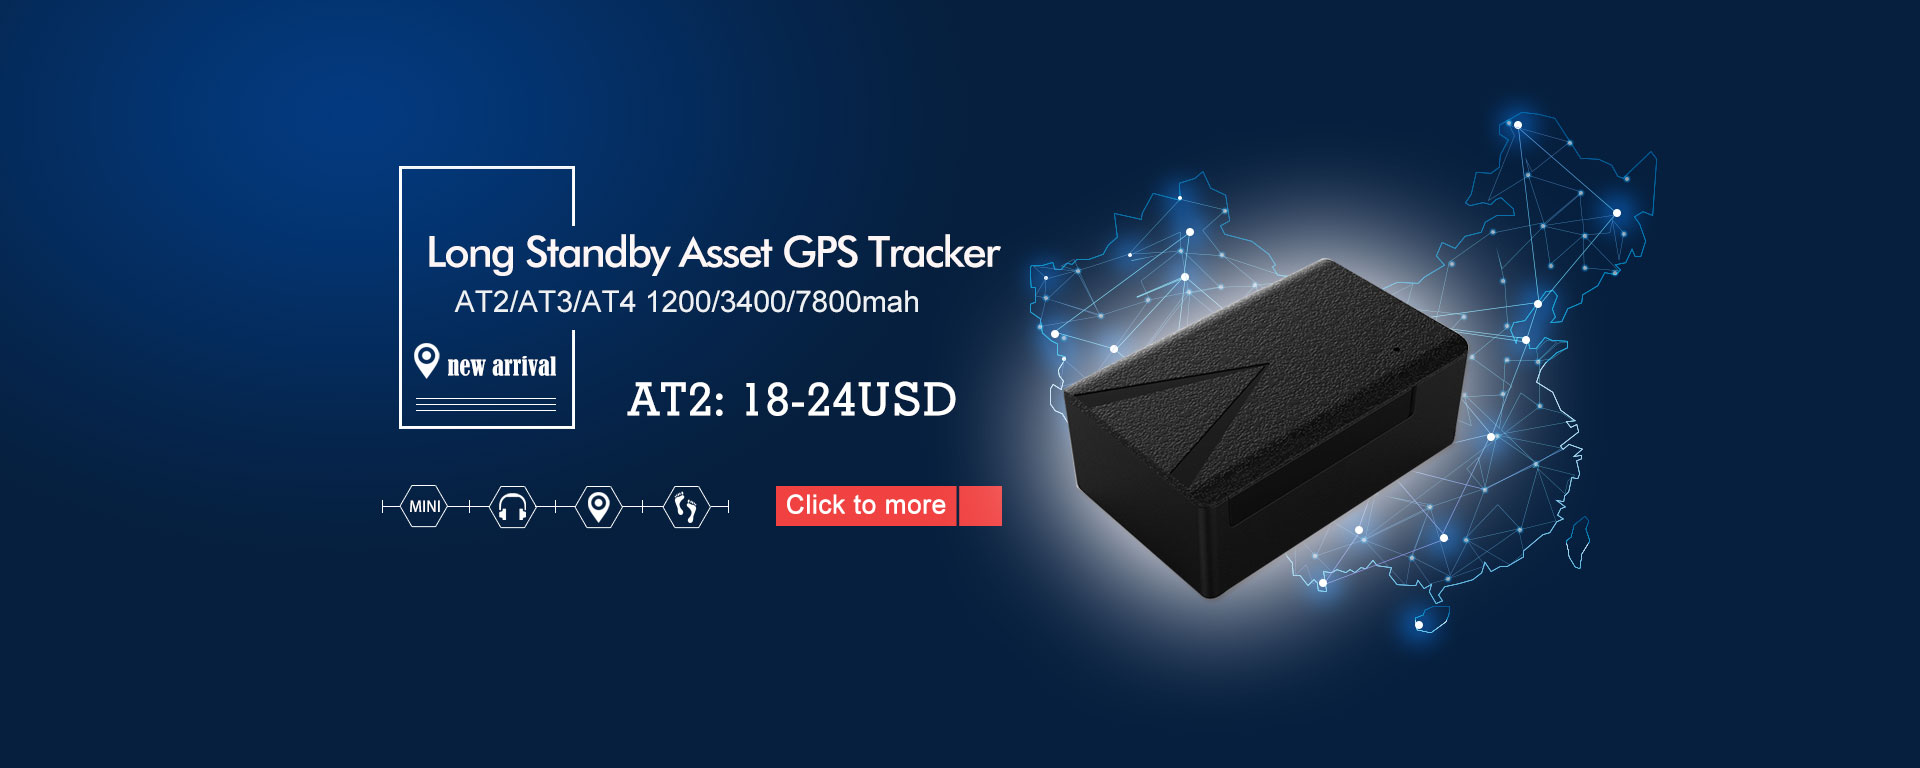 Long standby Asset gps tracker